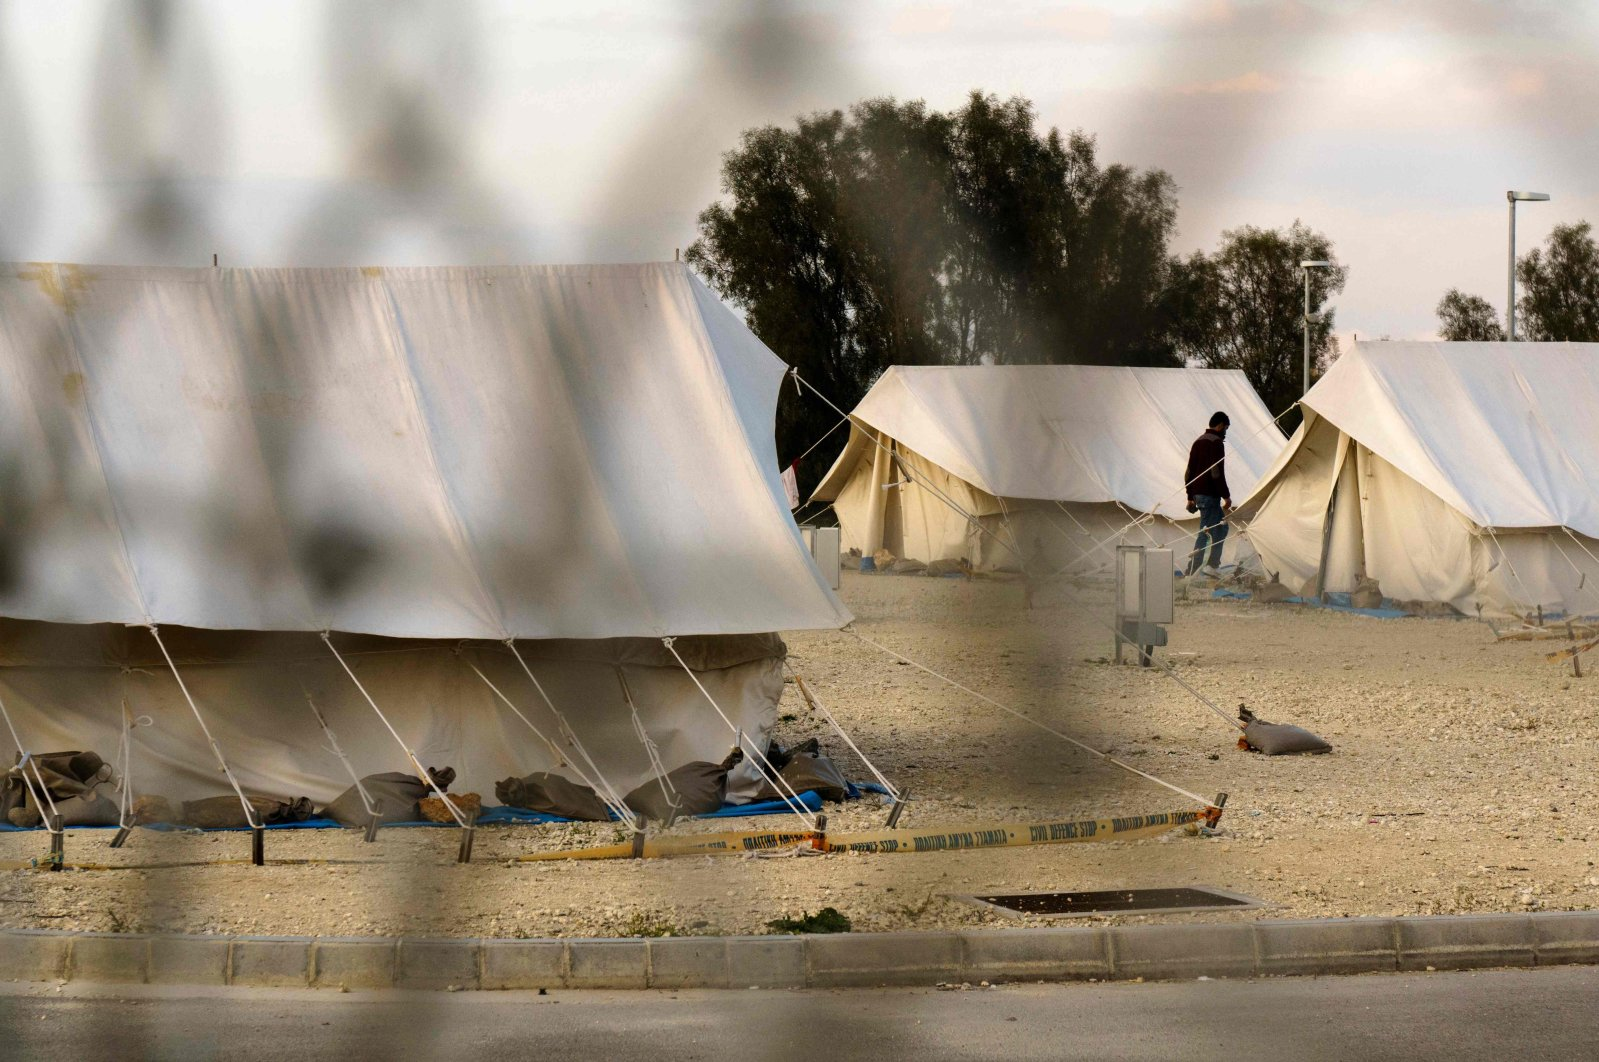 A Syrian refugee walks between tents at a reception center in Kokkinotrimithia on the outskirts Nicosia, Greek Cyprus, March 7, 2017. (AFP Photo)